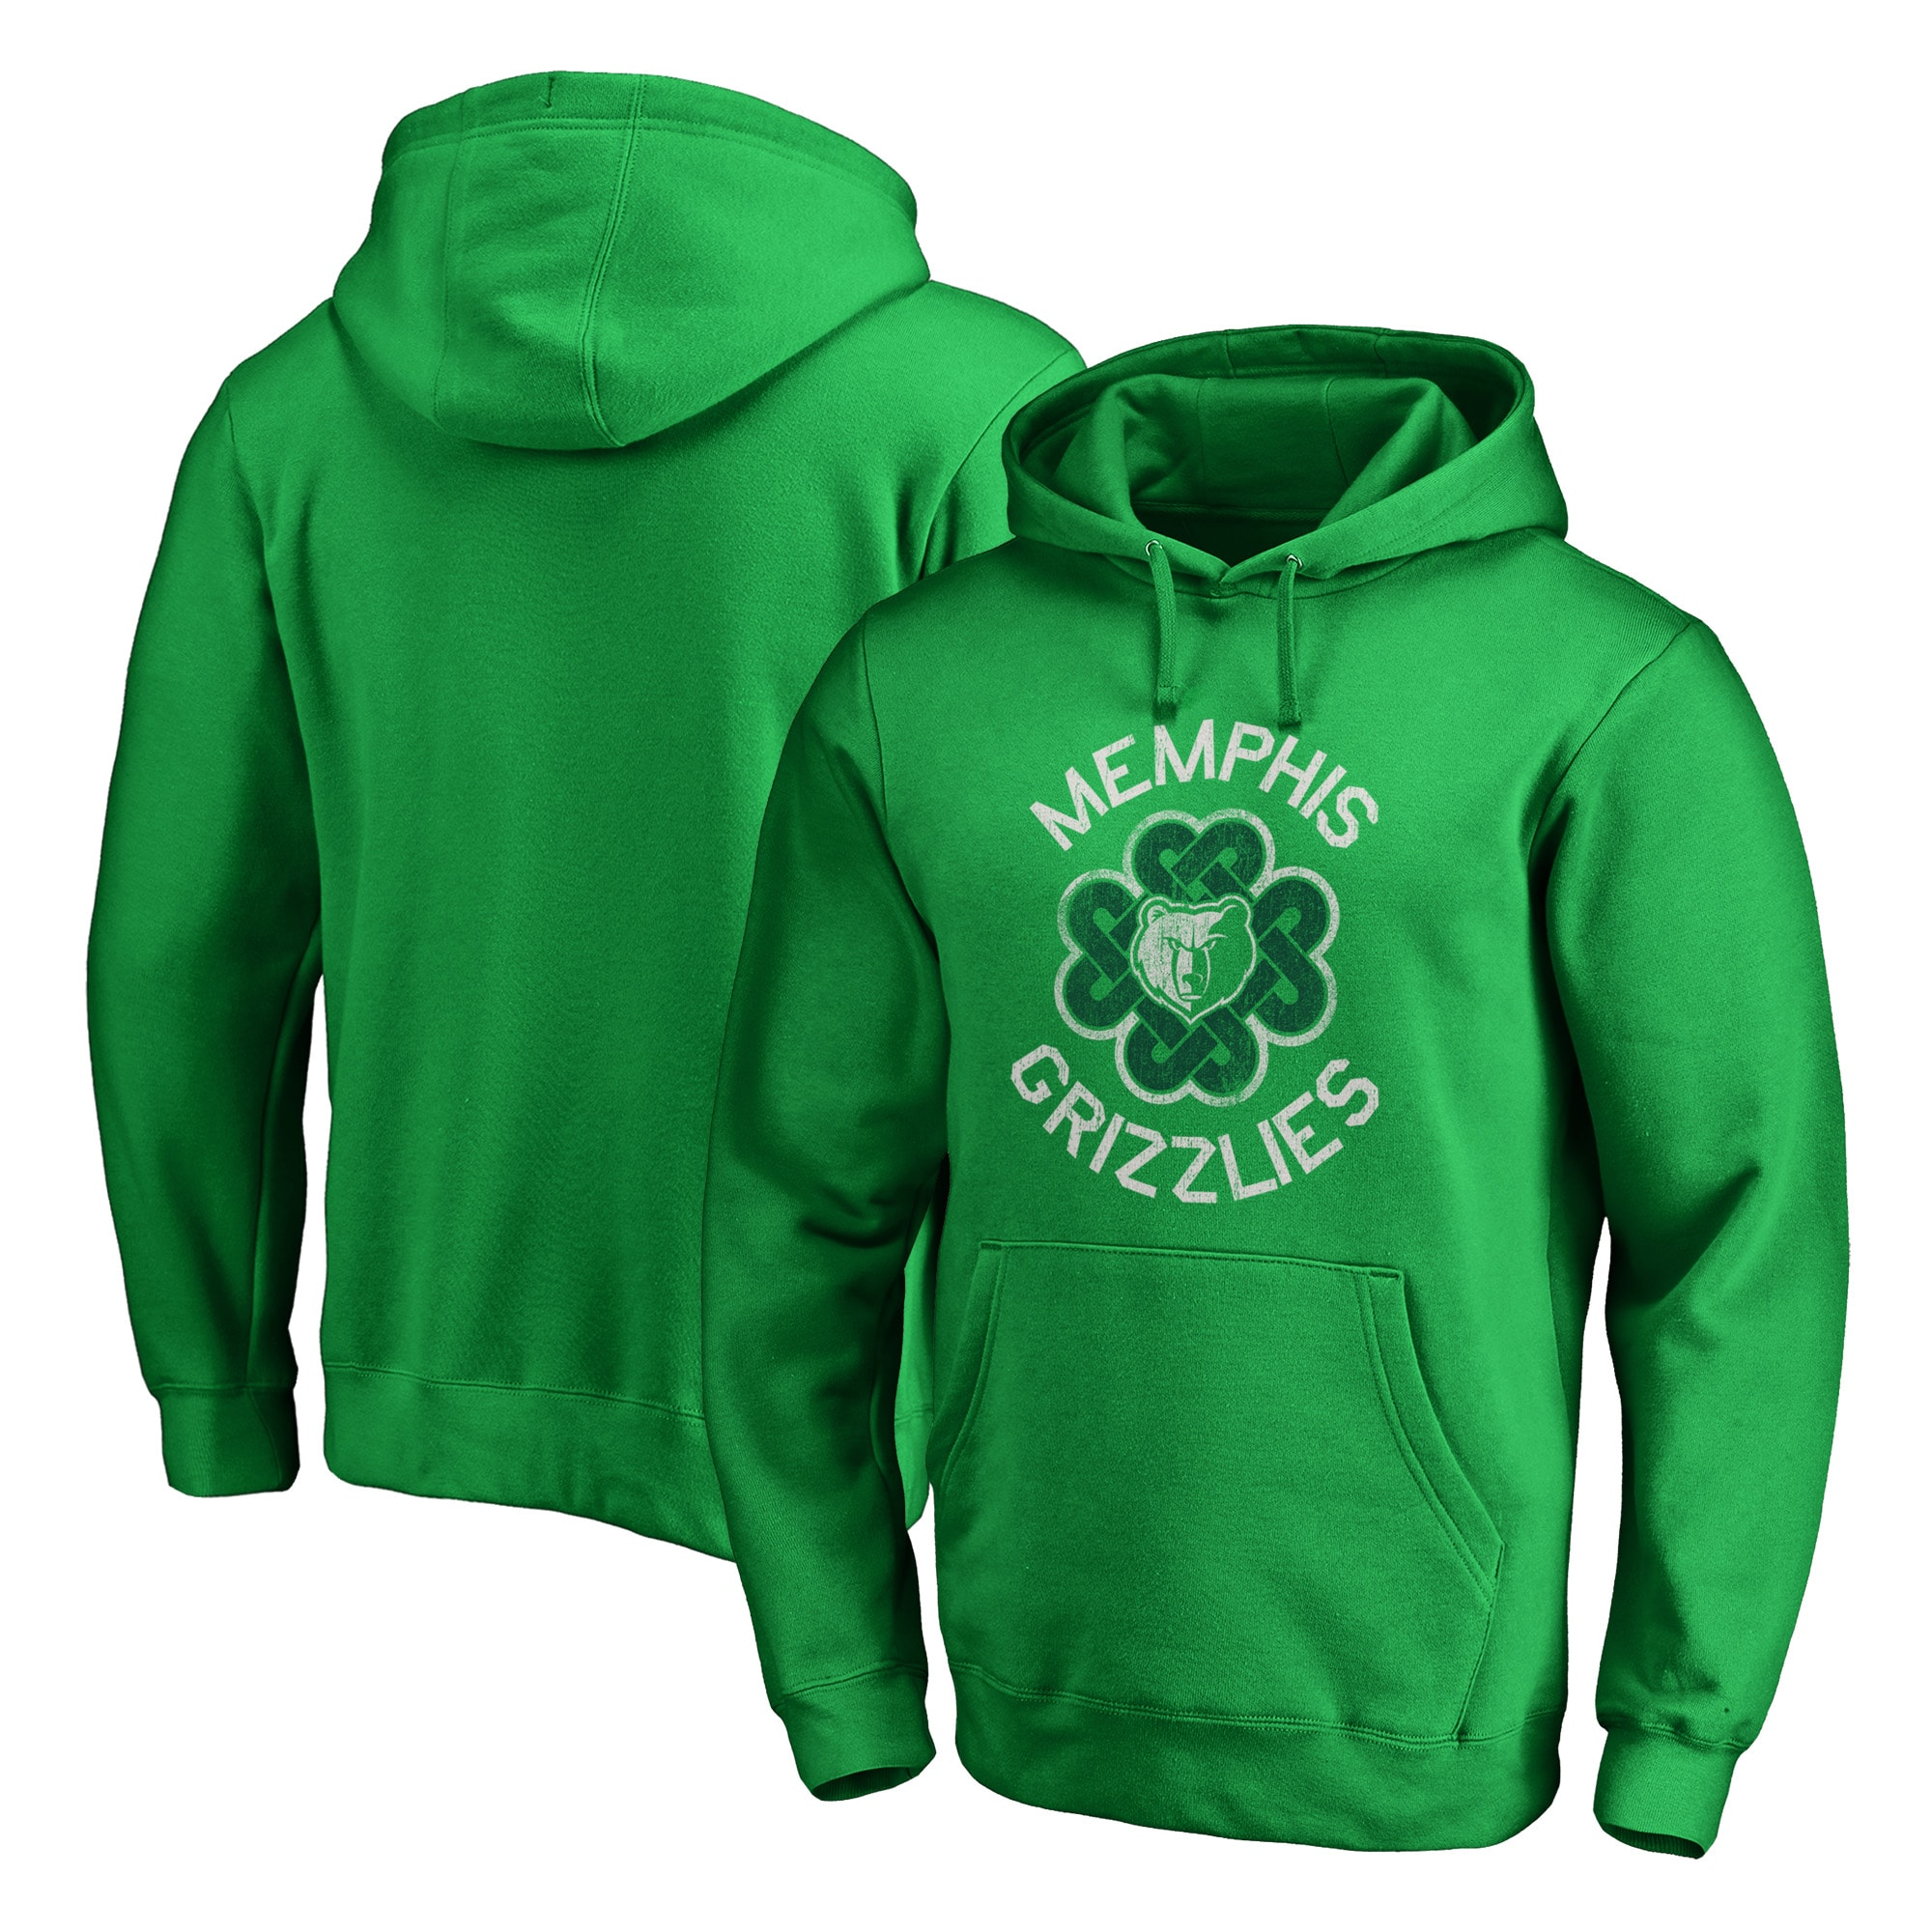 Memphis Grizzlies Fanatics Branded St. Patrick's Day Luck Tradition Pullover Hoodie - Kelly Green